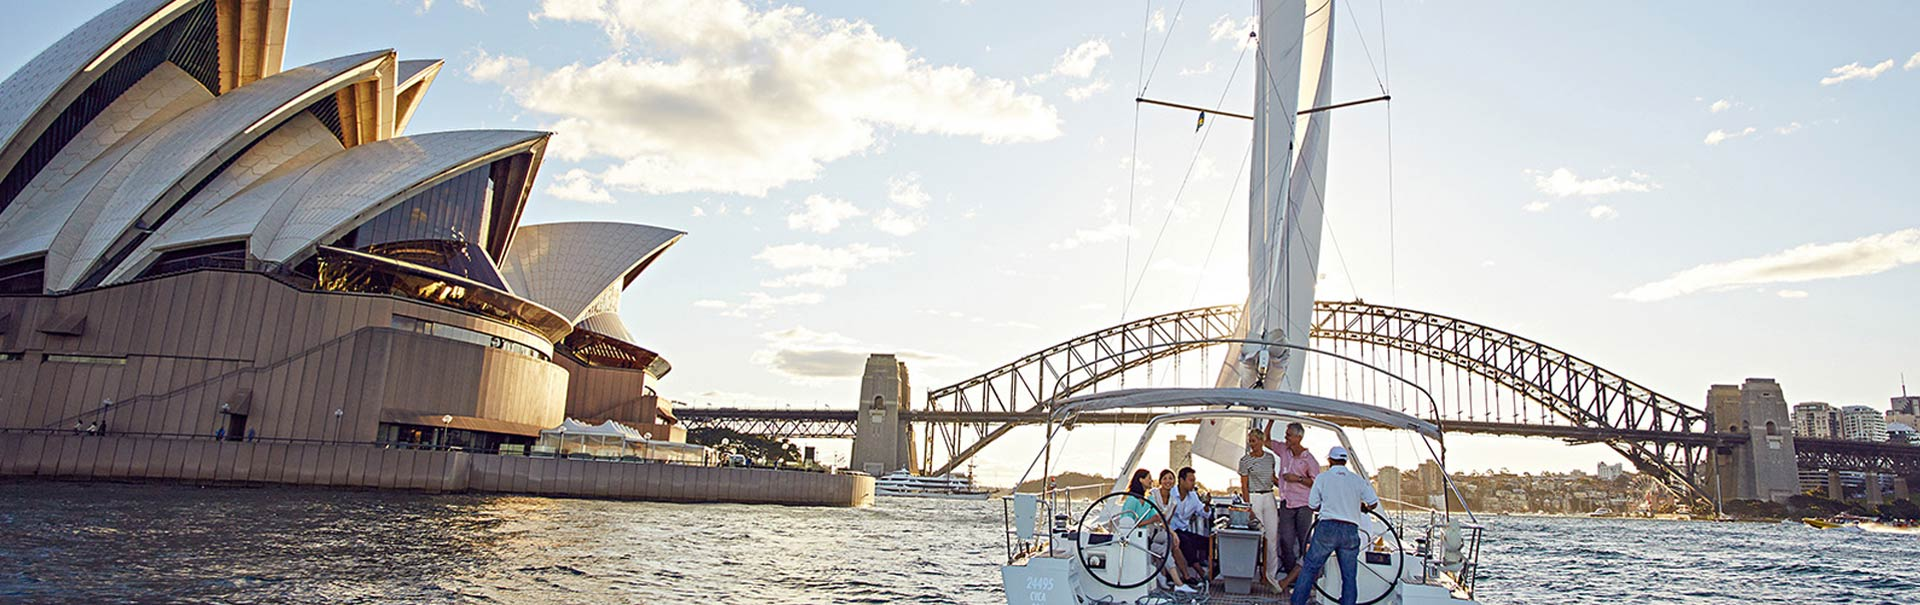 Sydney (2N) Post Tour Holiday- Relax and Explore (PHAU1) Banner